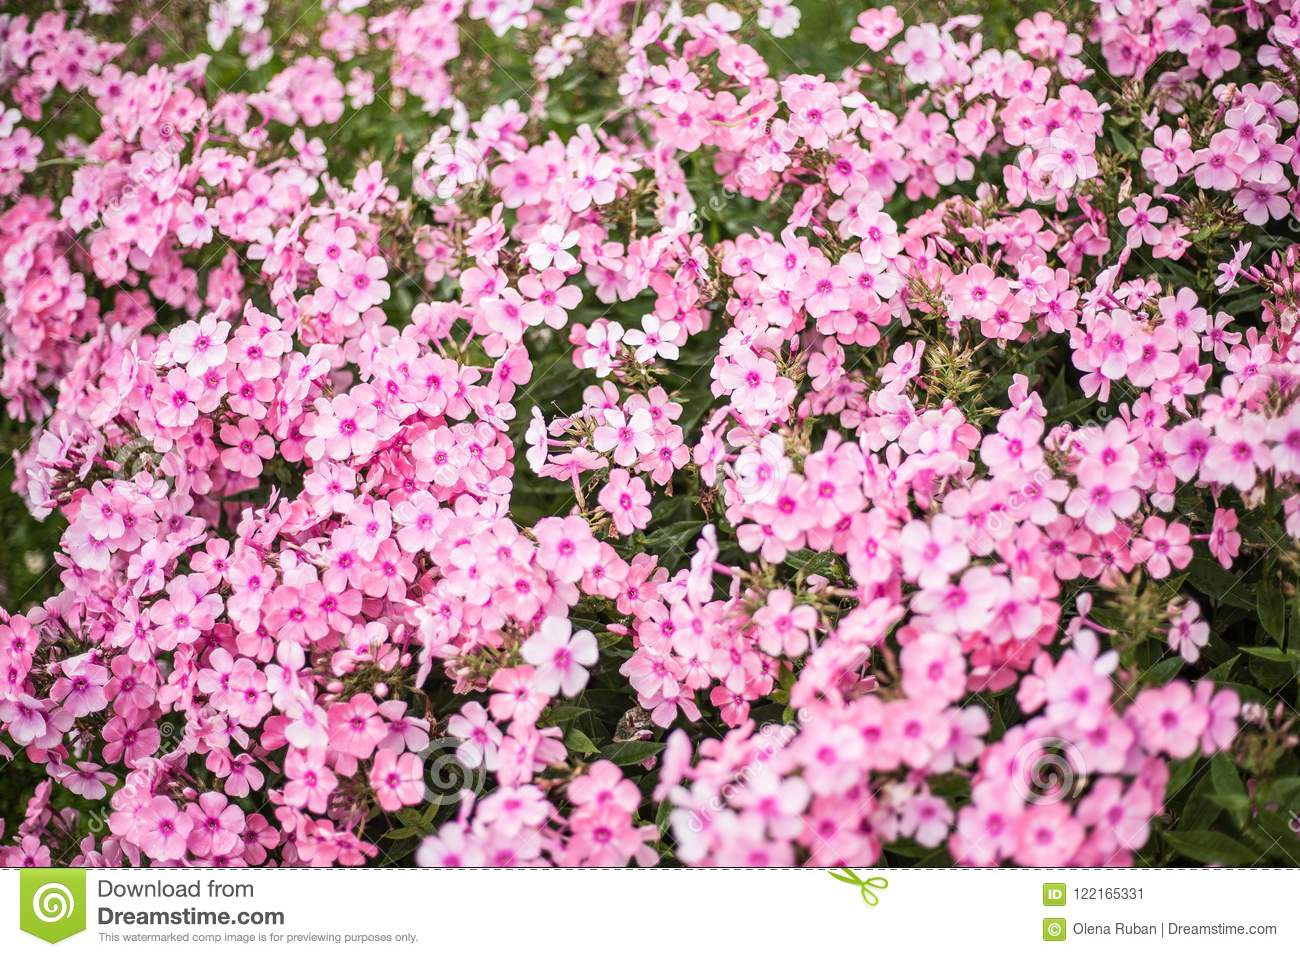 Small pink flowers on flower bed